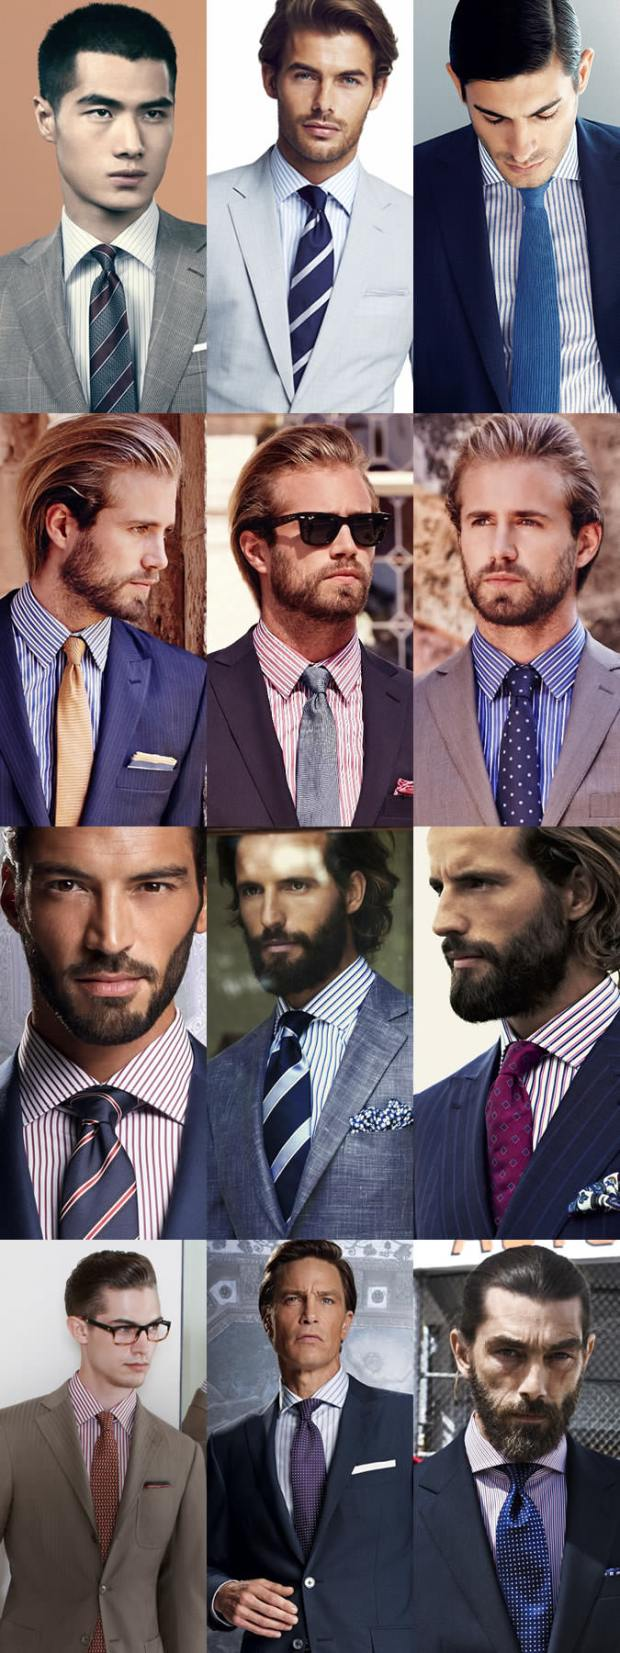 How to match a tie with a striped shirt